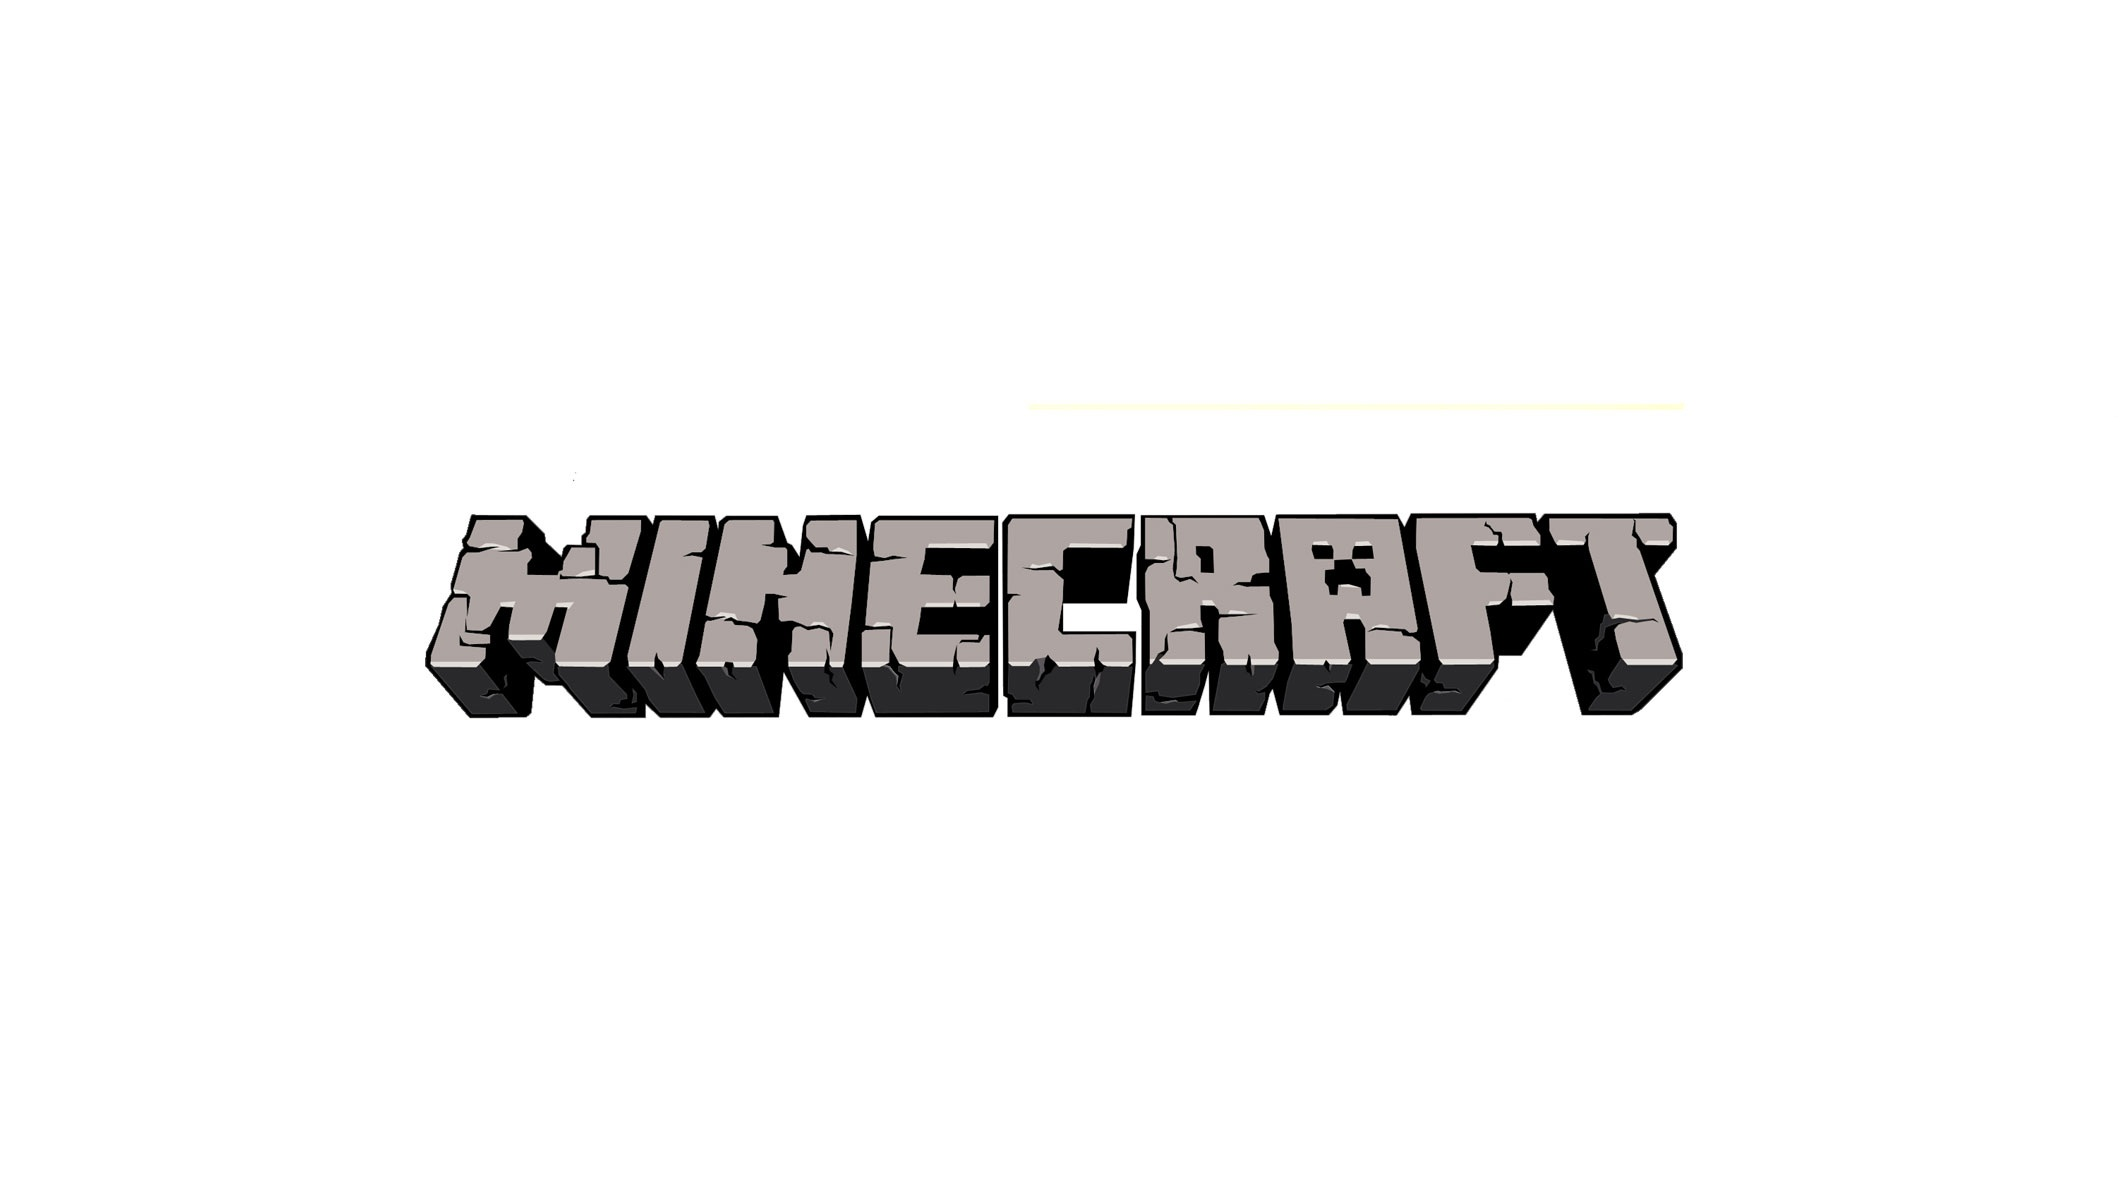 Description a basic minecraft banner displaying the minecraft logo